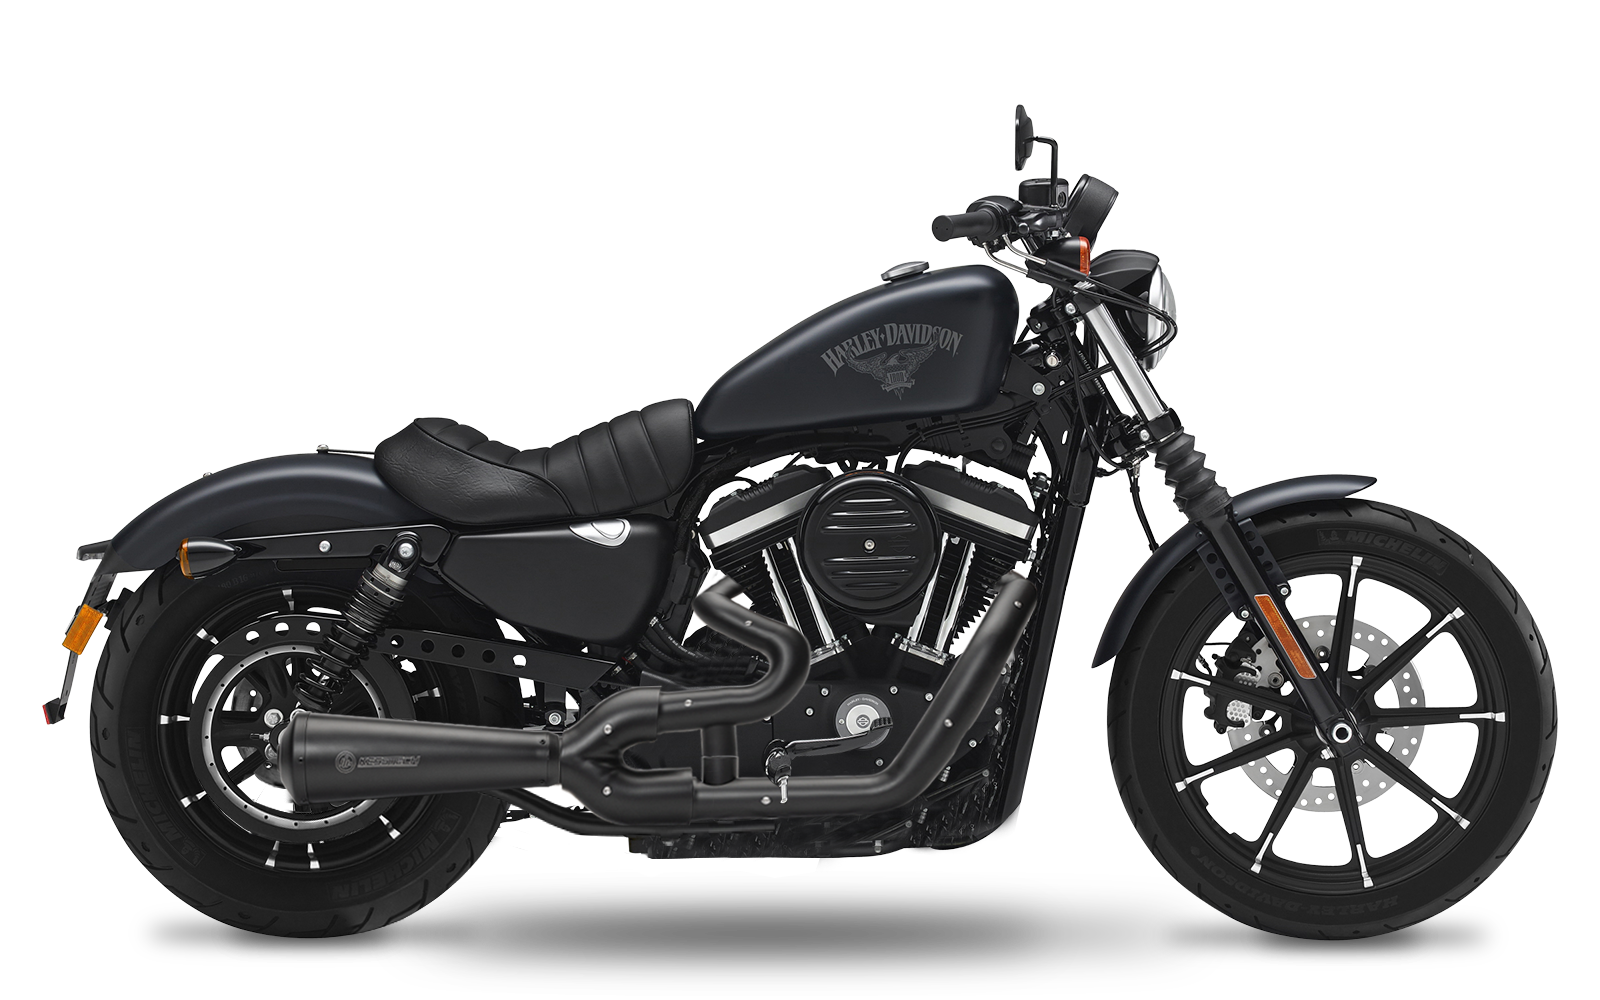 Sportster - Iron 883 - XL - 2017-2020 - Complete systems non adjustable